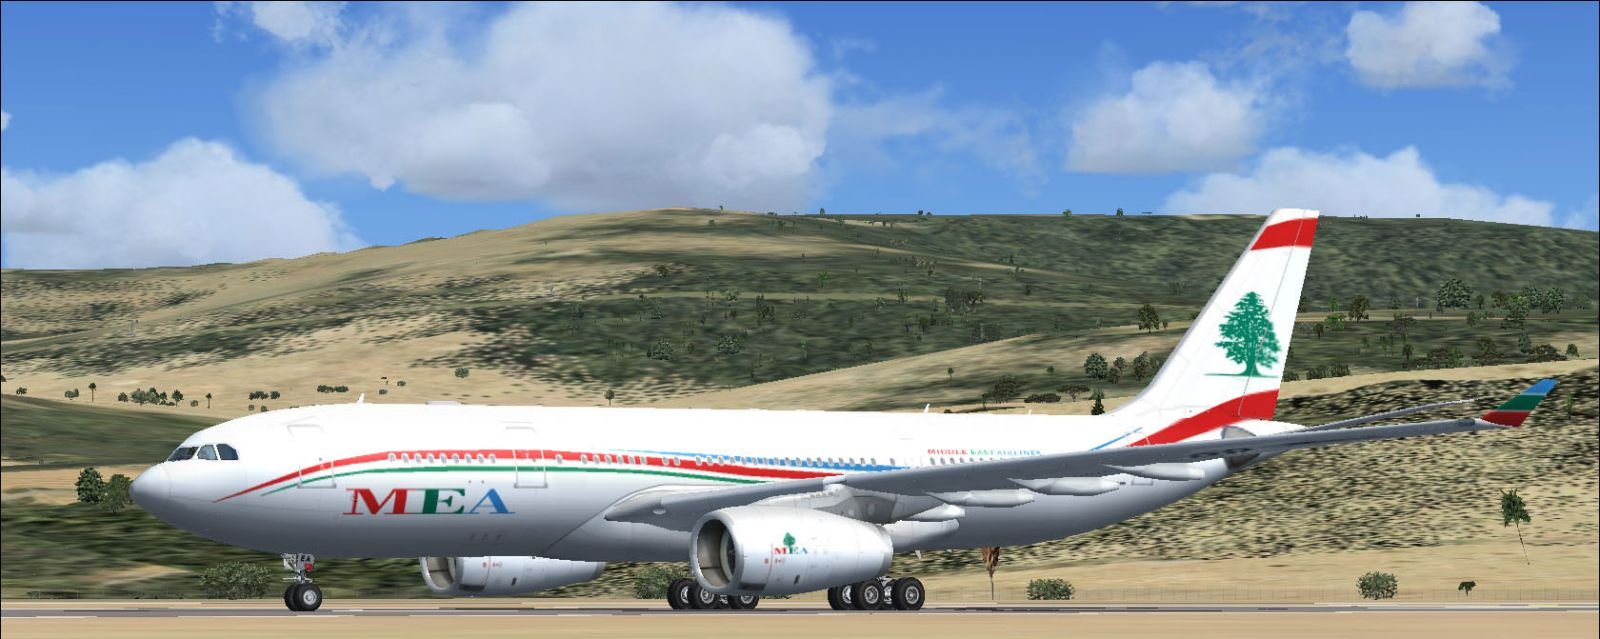 File:OD-RMI, Airbus A321-231, MEA - Middle East Airlines